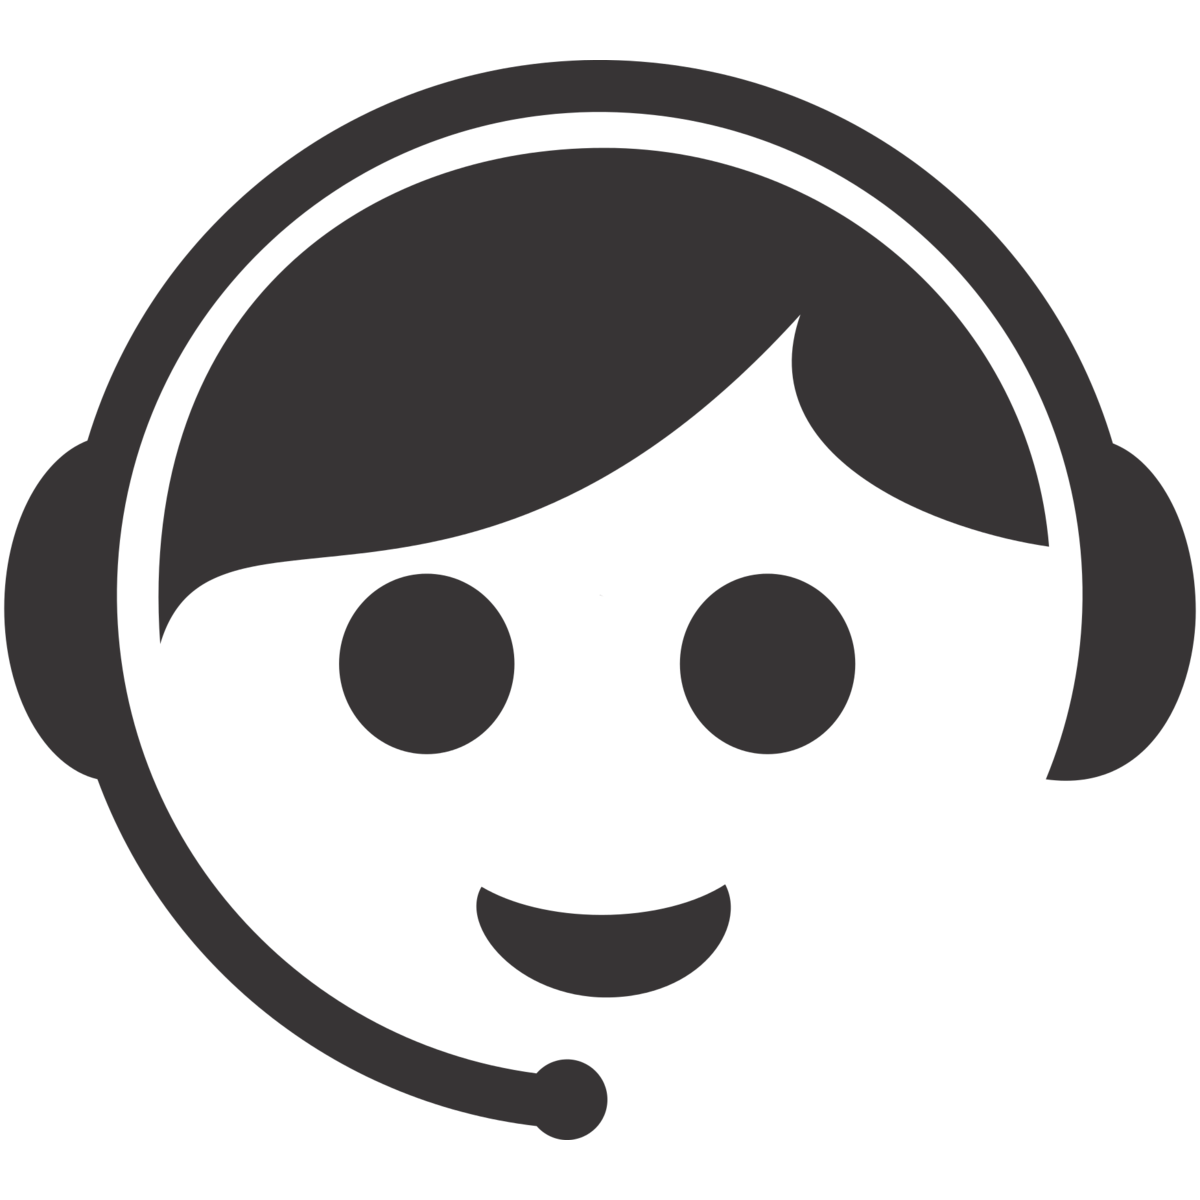 customer-service-icon-png-9.png